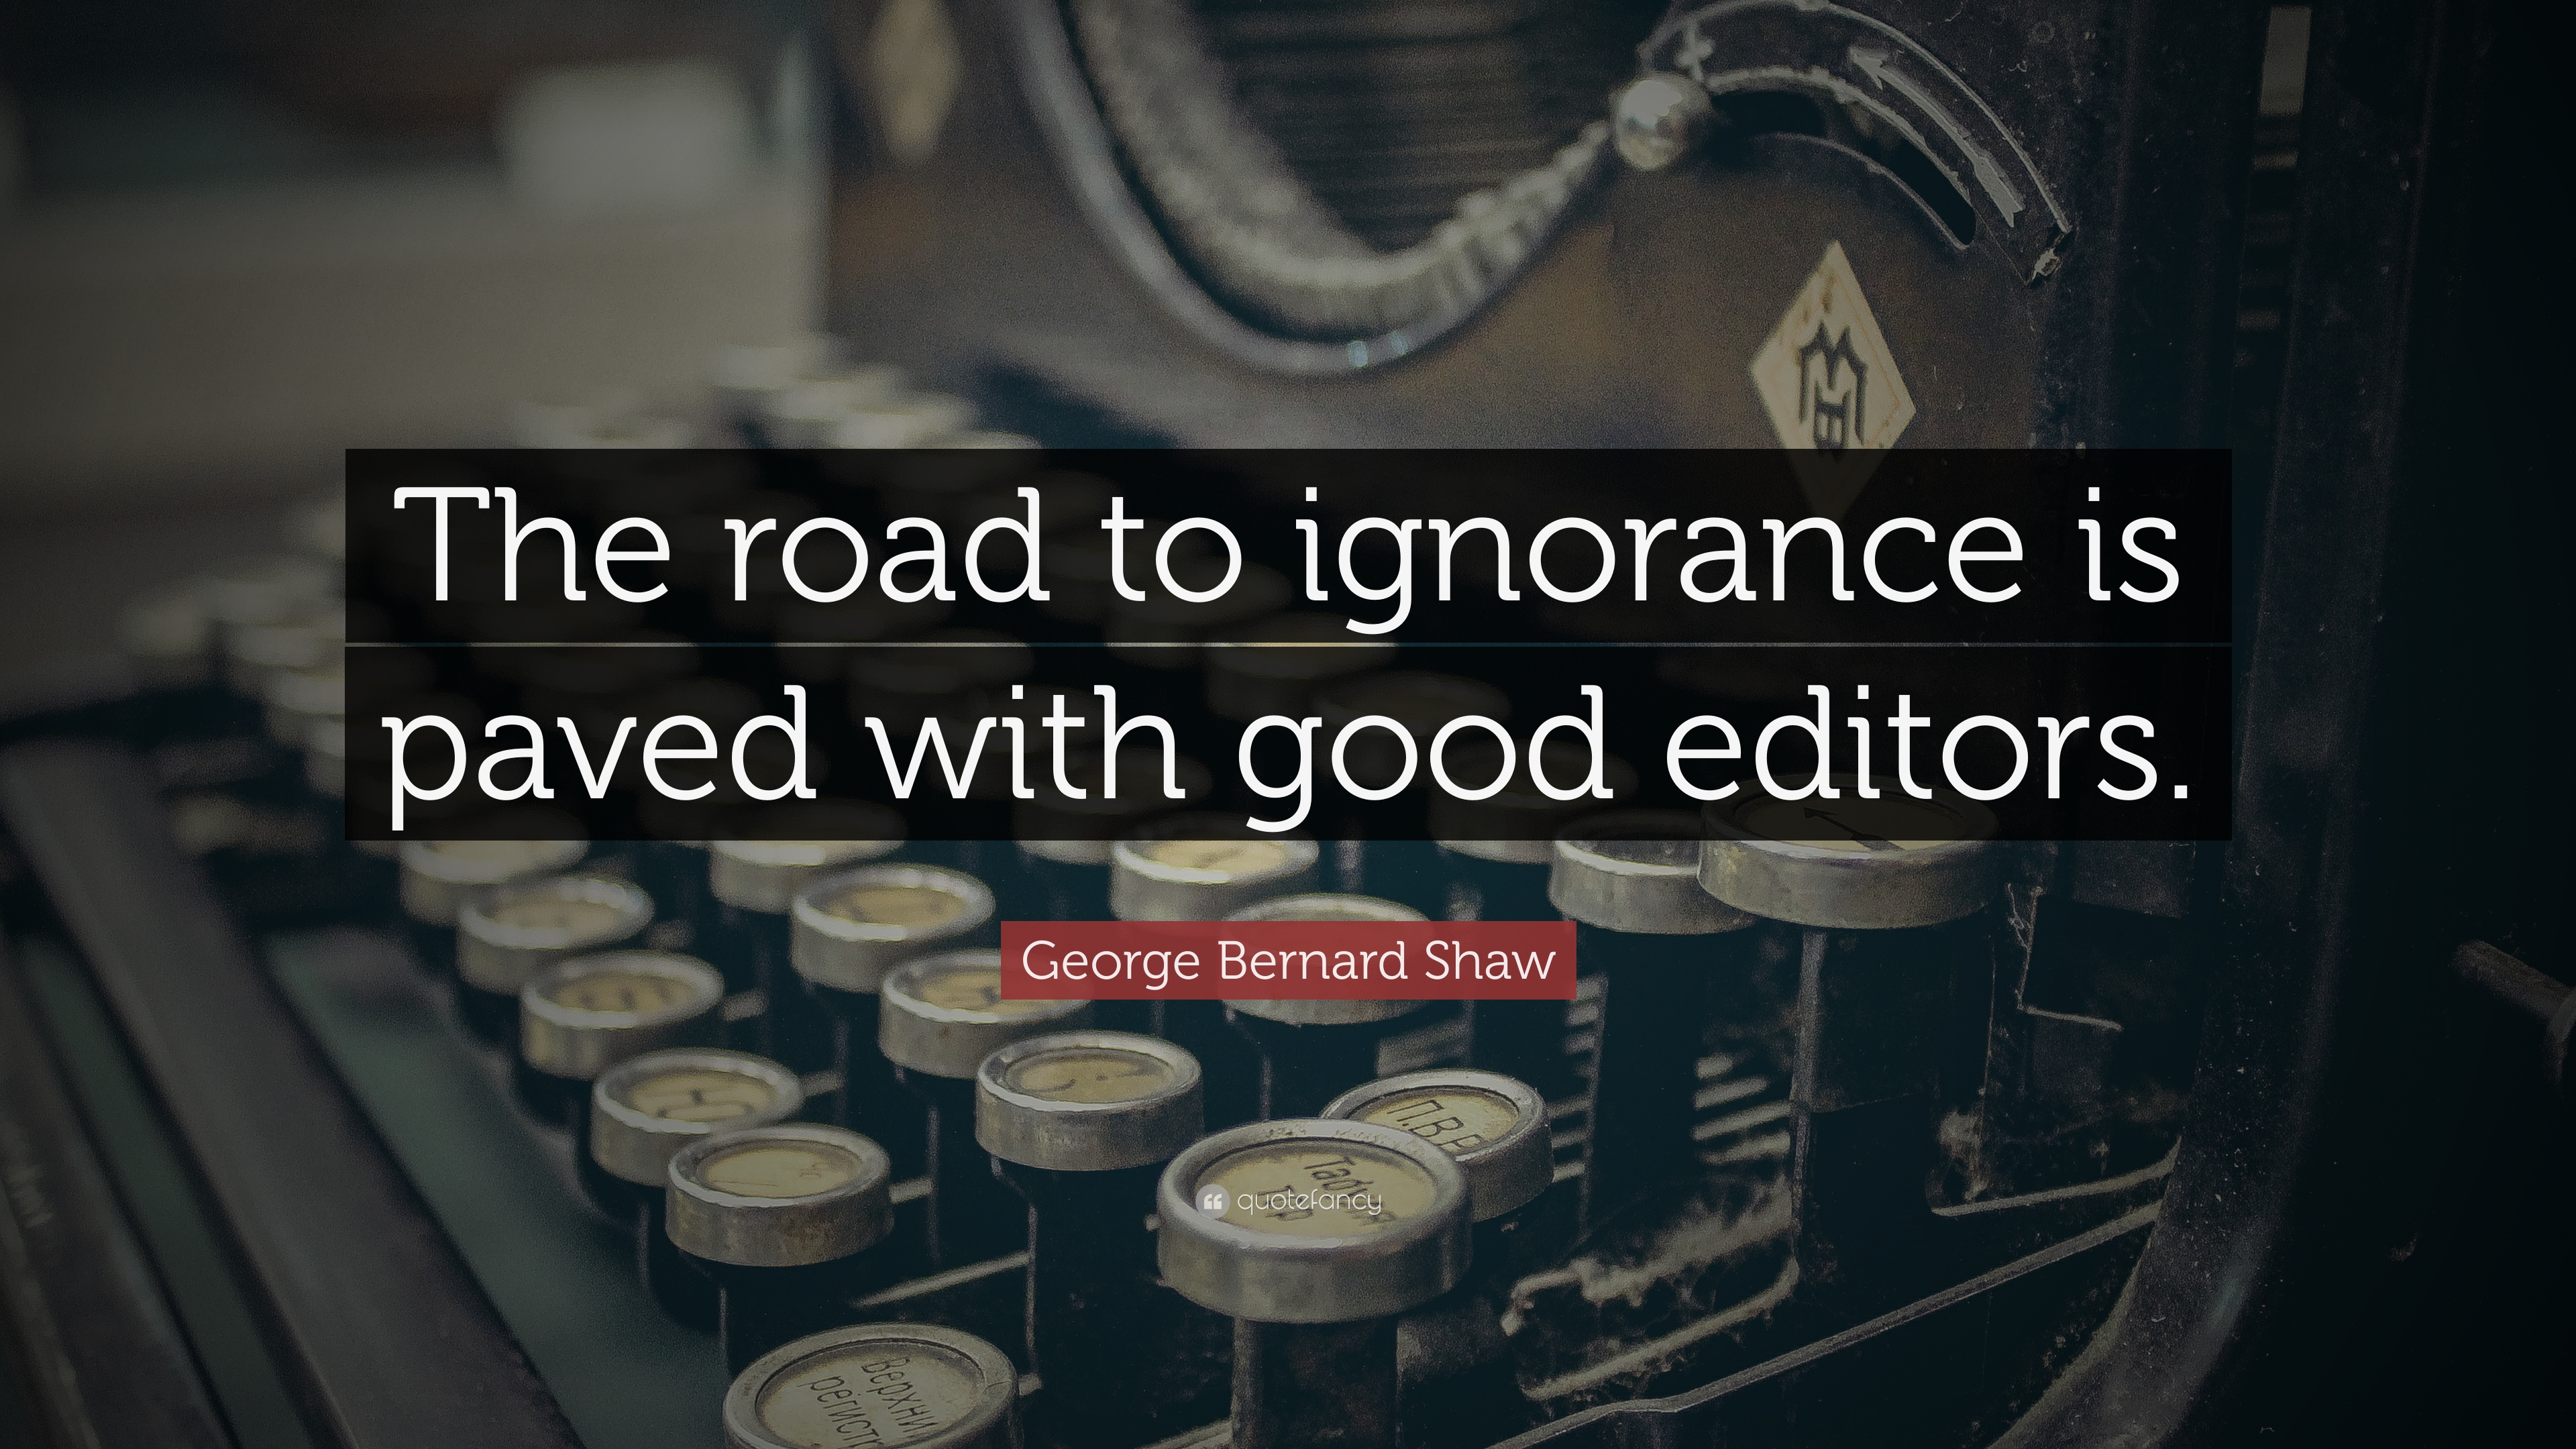 George Bernard Shaw Quote The Road To Ignorance Is Paved With Good